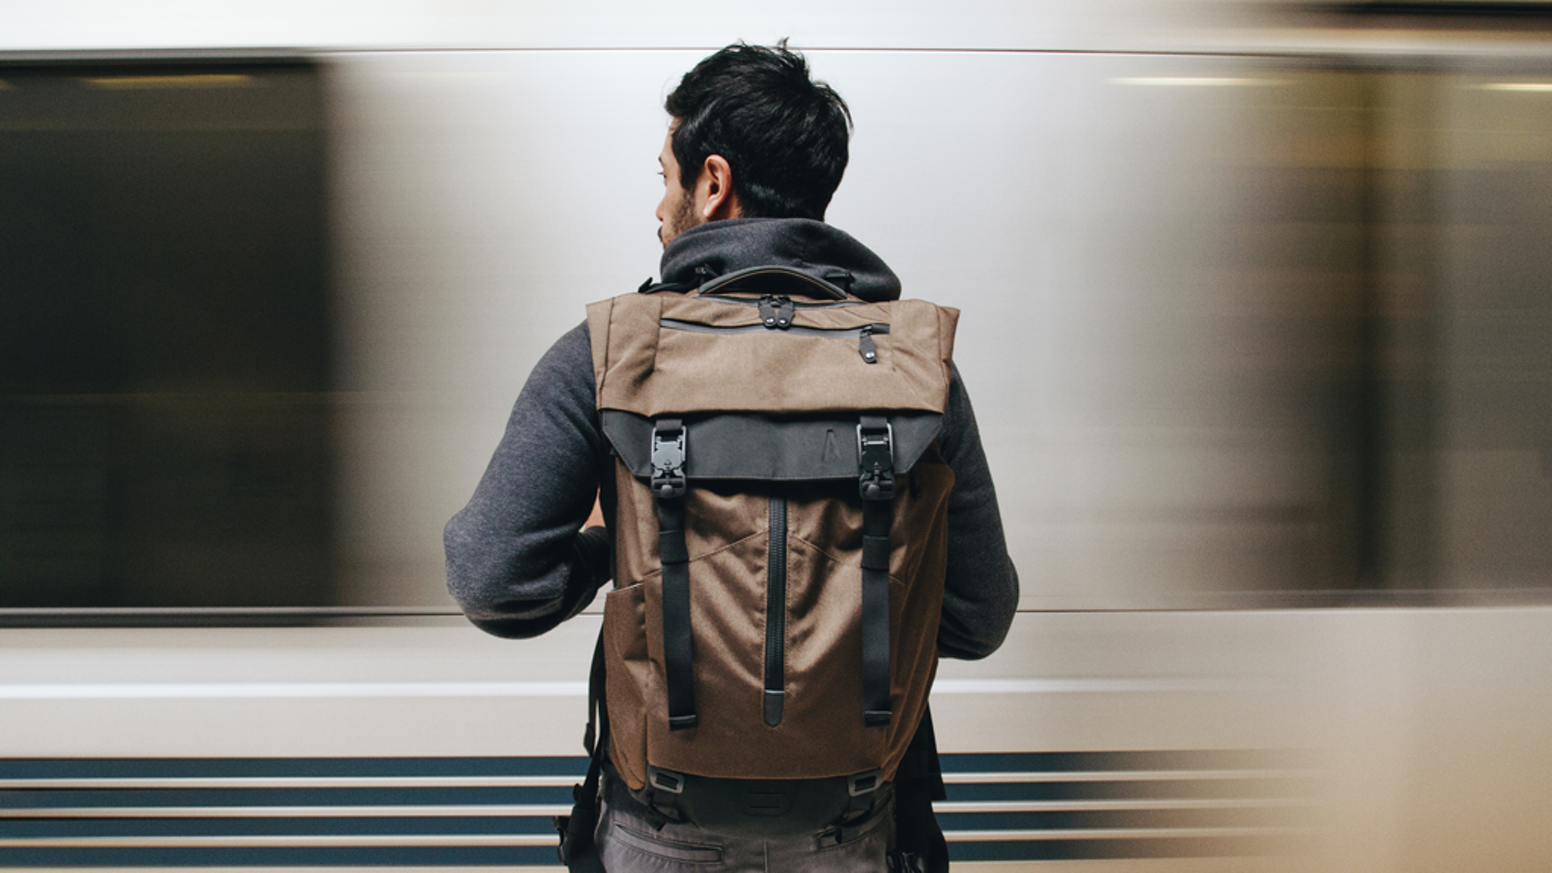 161c1f53a8d9 The Ultimate Modular Backpack keeps you organized for daily carry and  weekend travels.